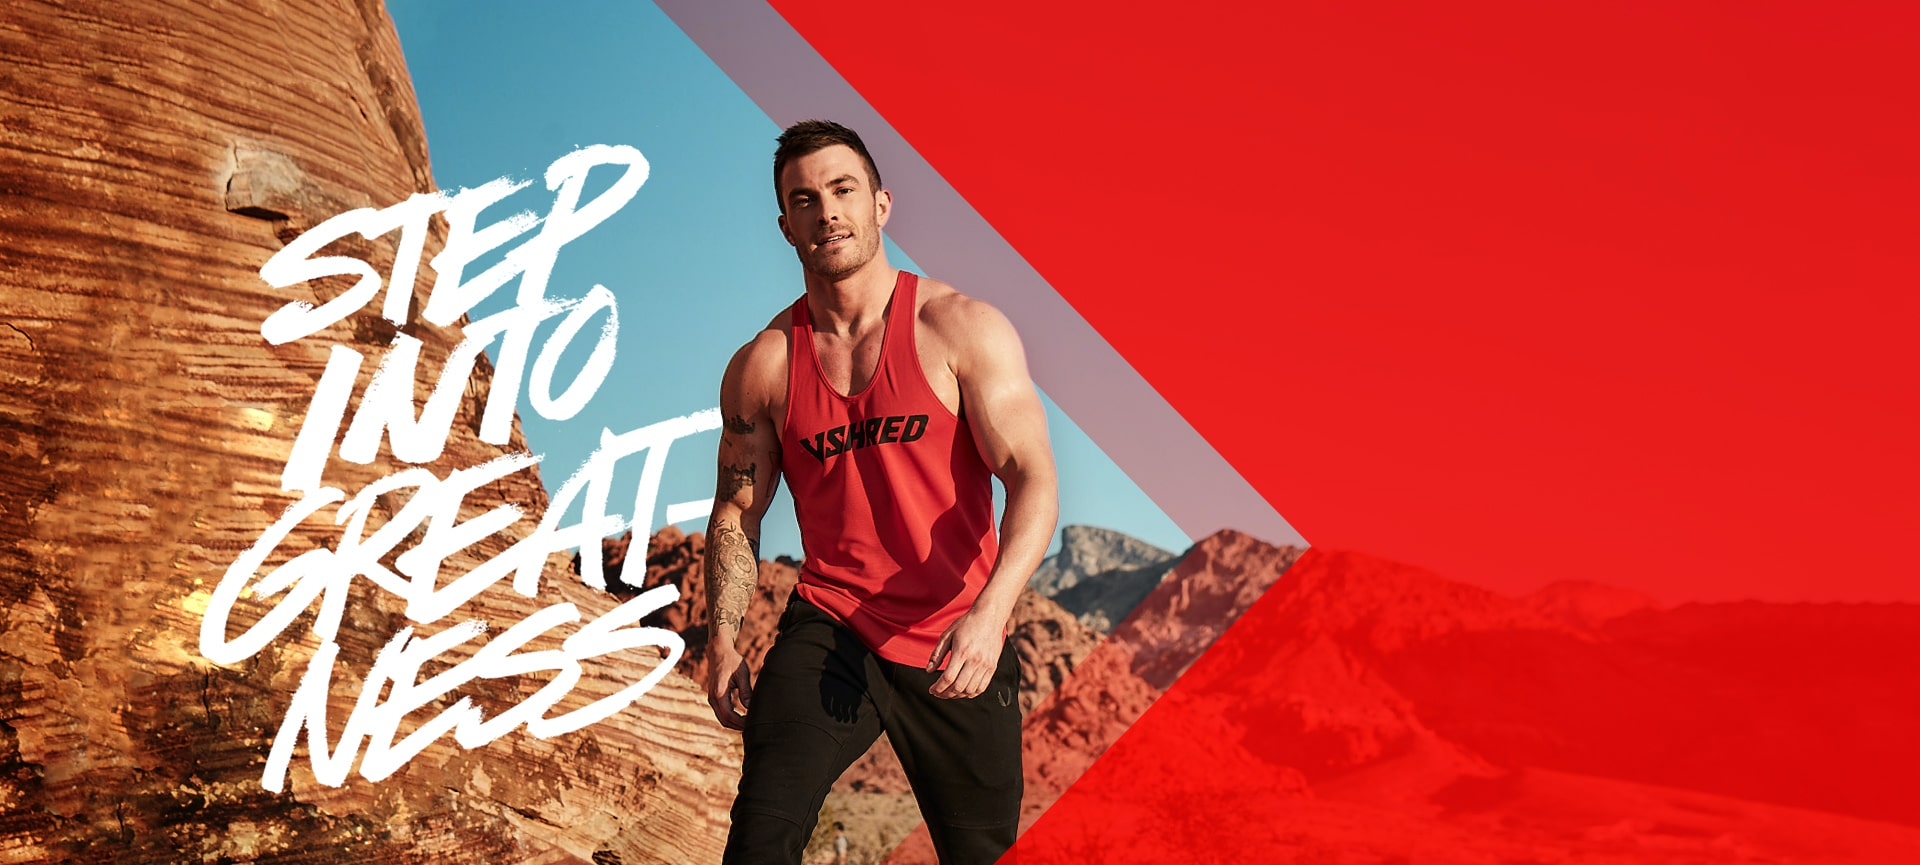 Sculpt Nation - Step Into Greatness